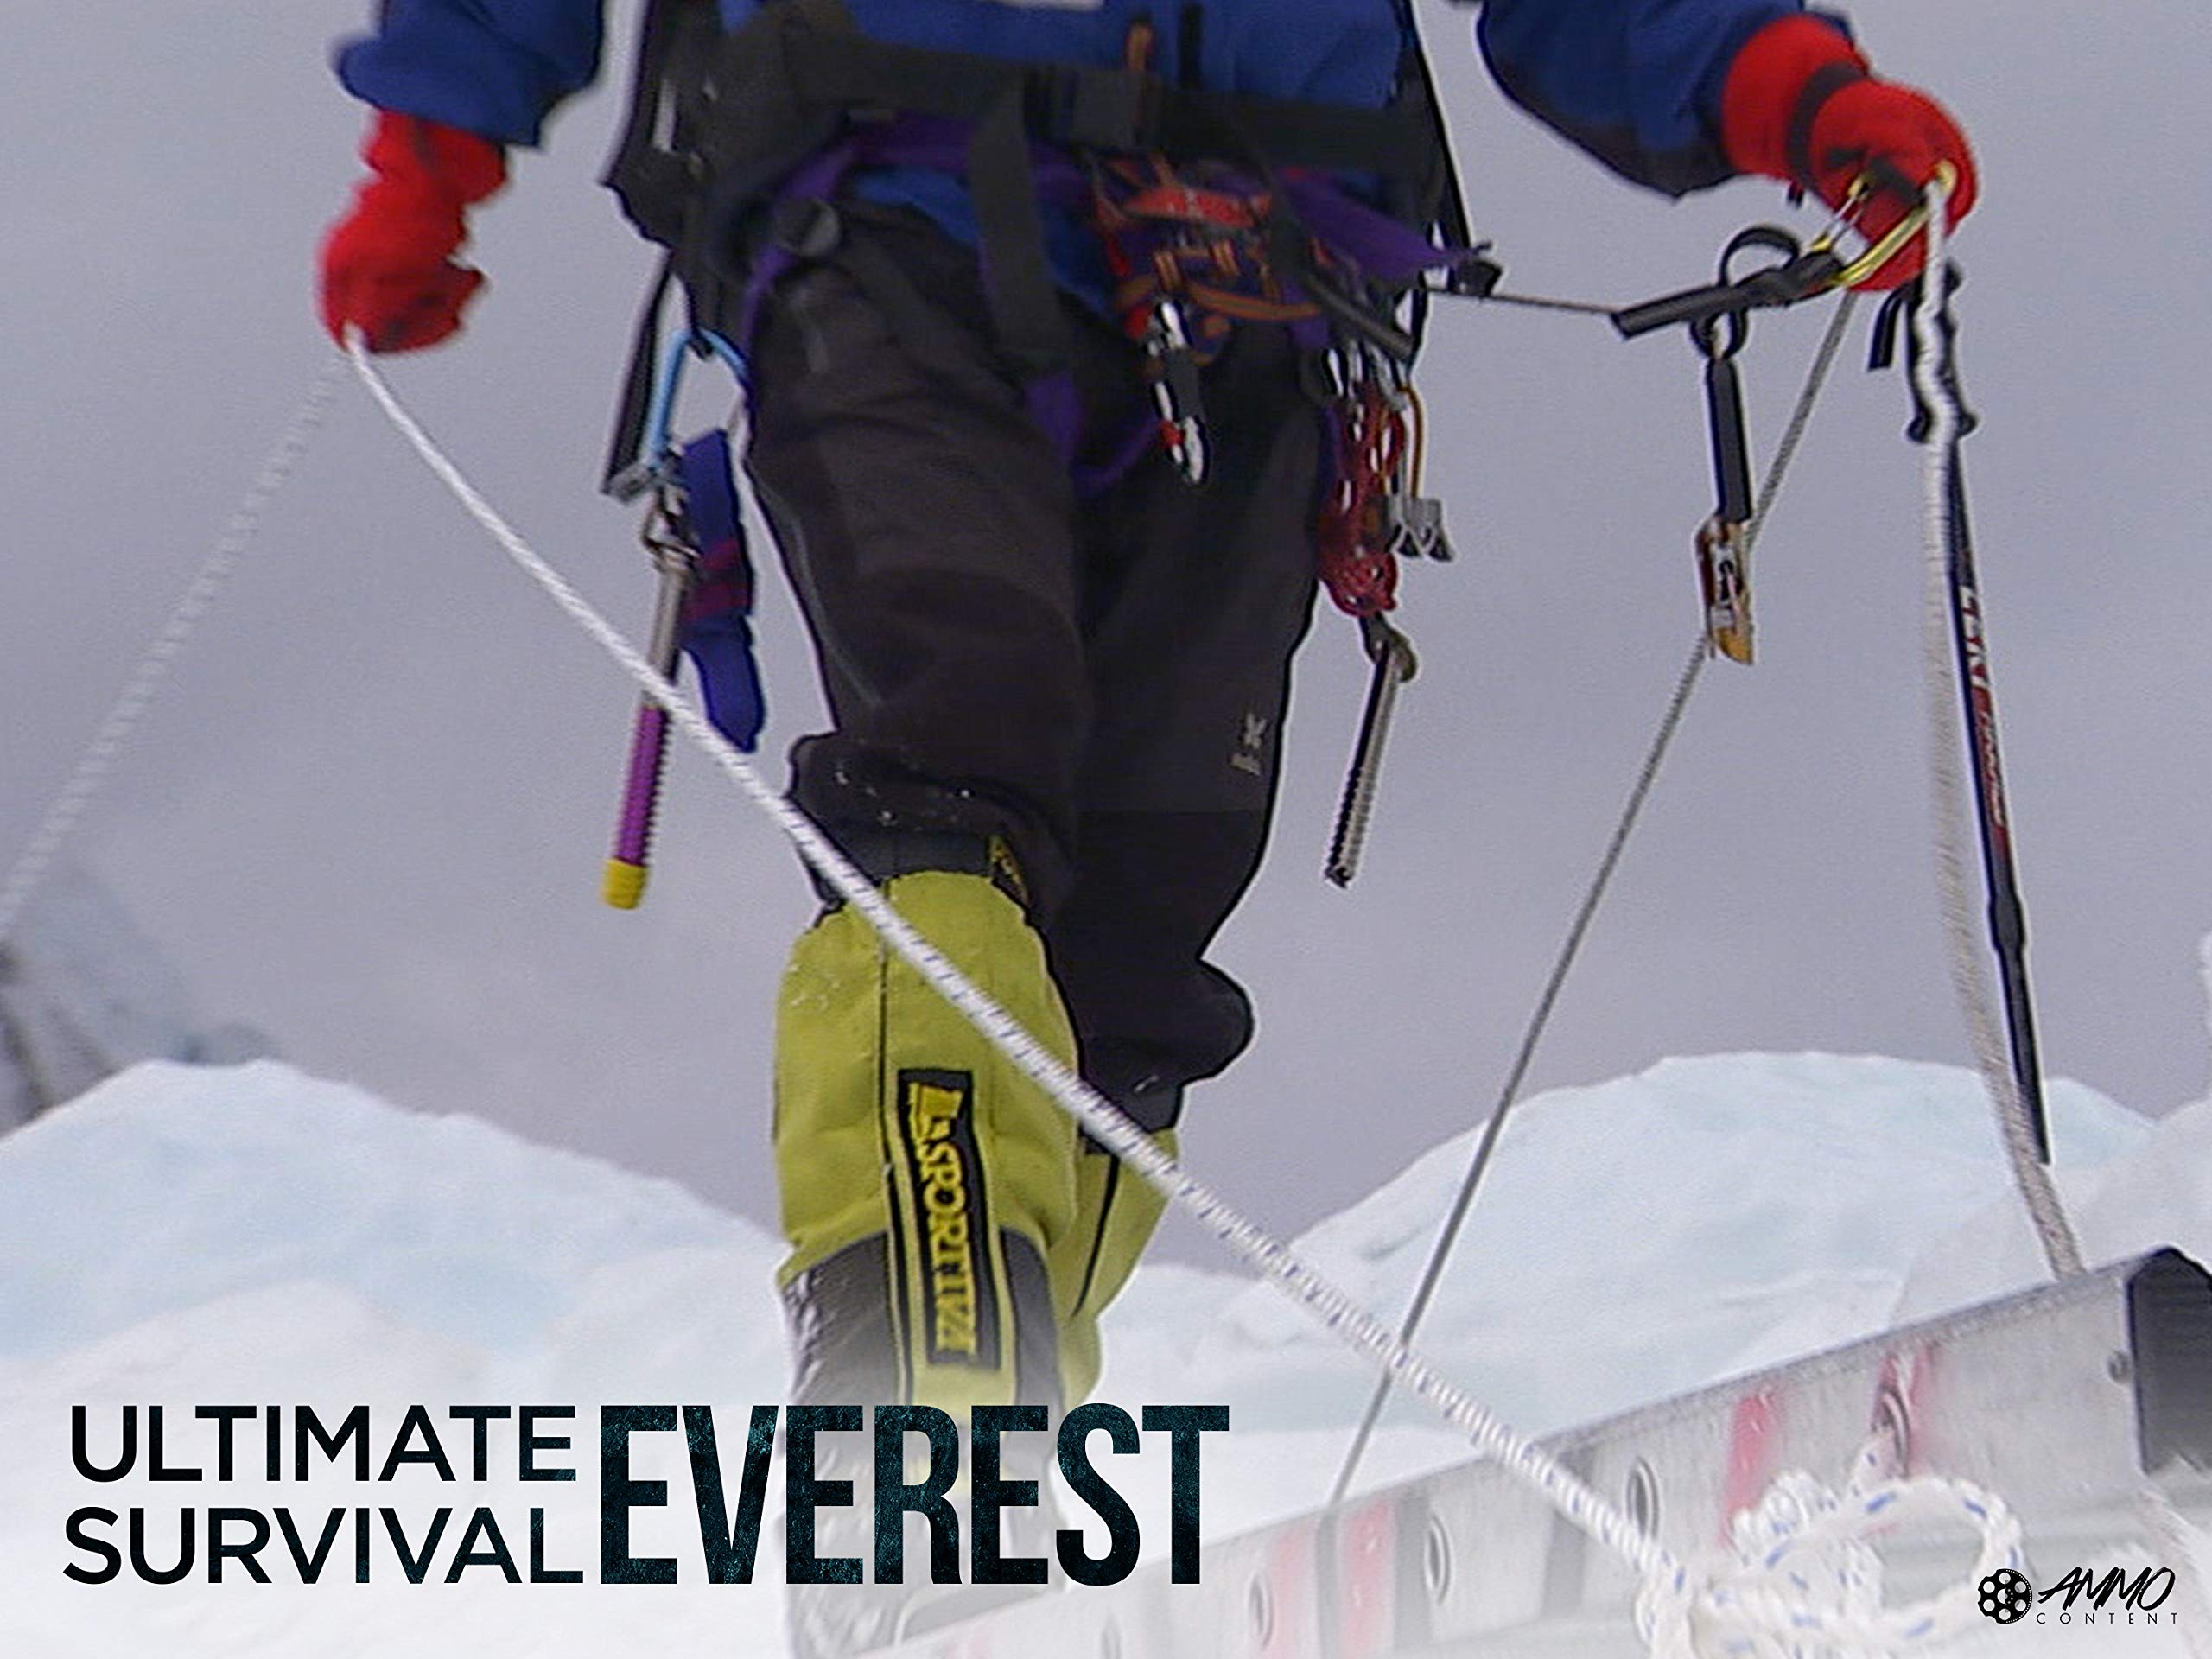 Ultimate Survival Everest